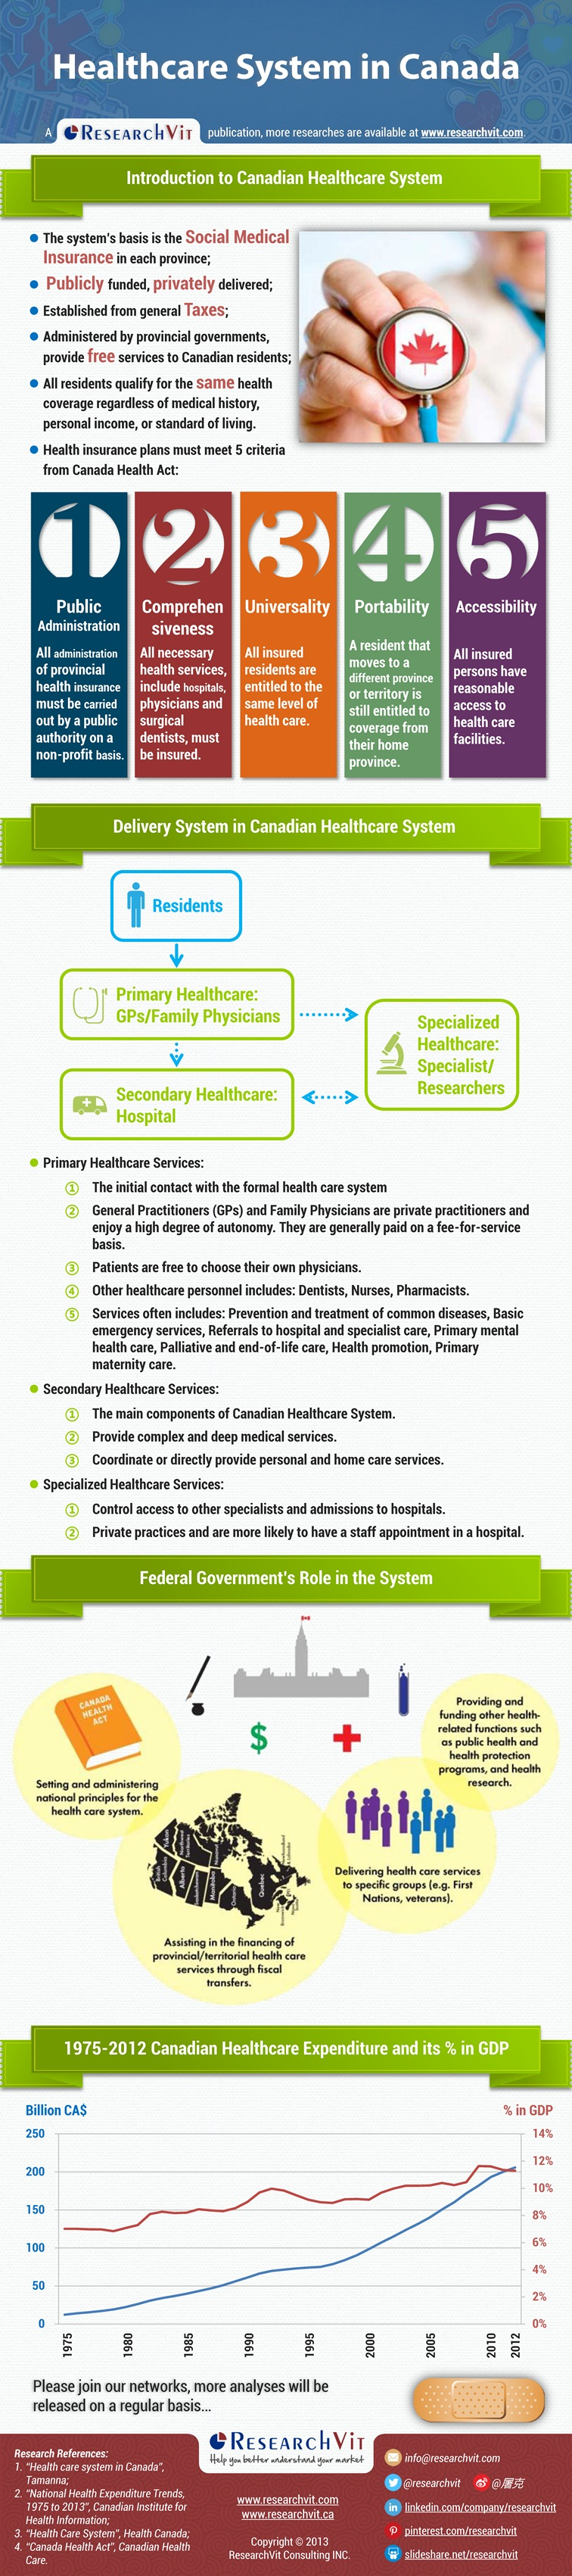 Healthcare System In Canada The System S Basis Is The Social